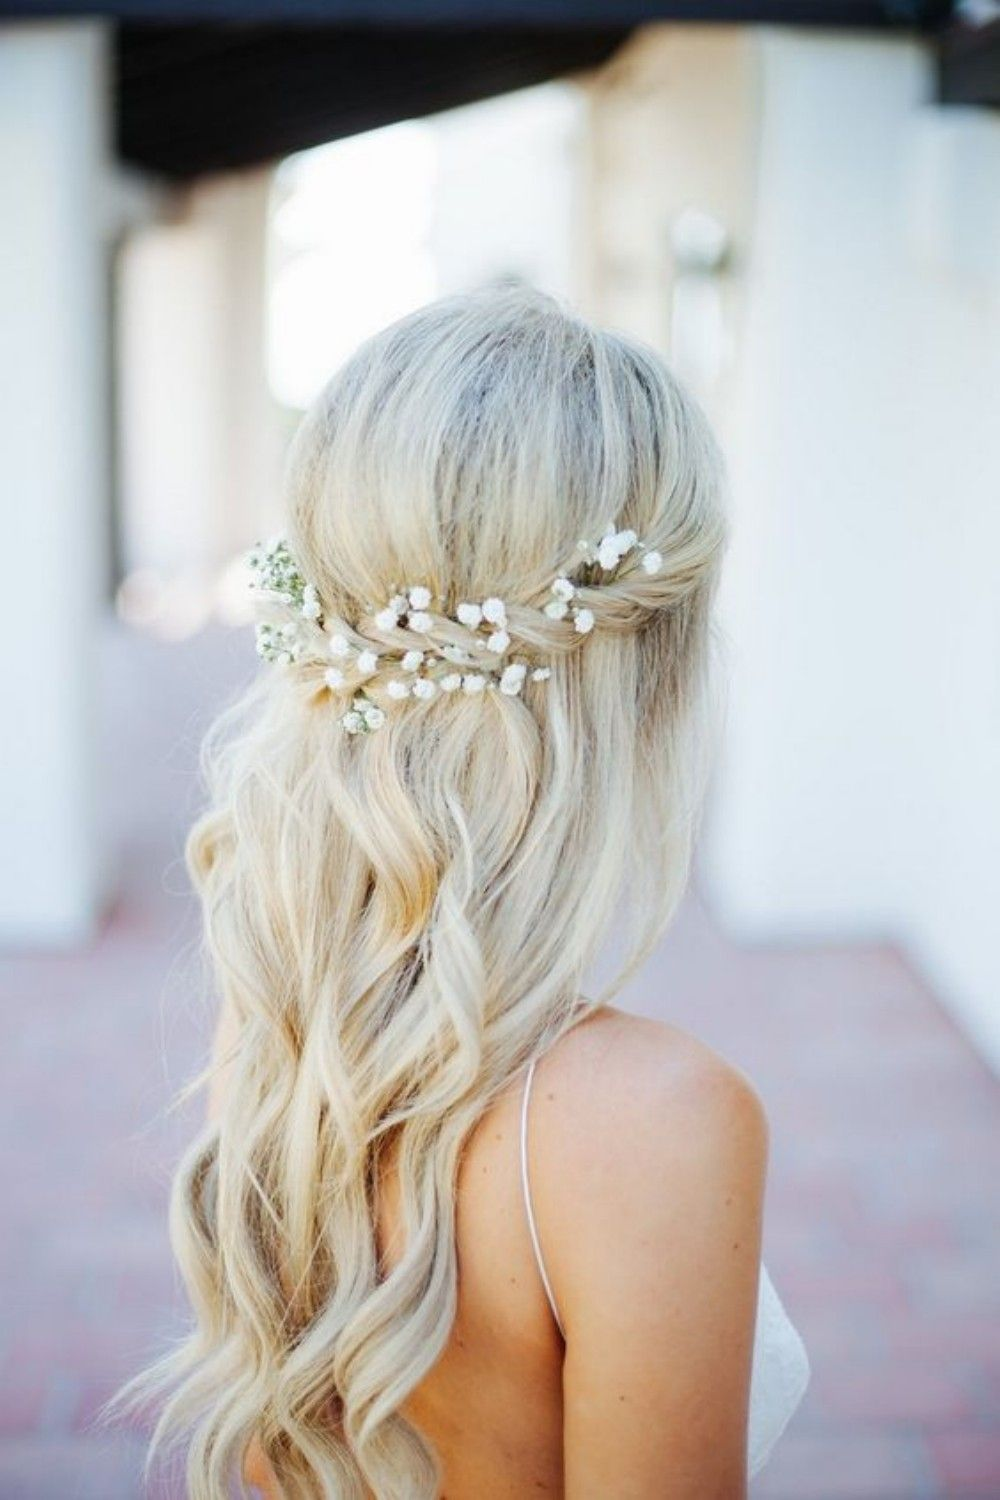 33 Gorgeous Curl Wedding Hairstyle Inspiration | Weddings, Wedding ...